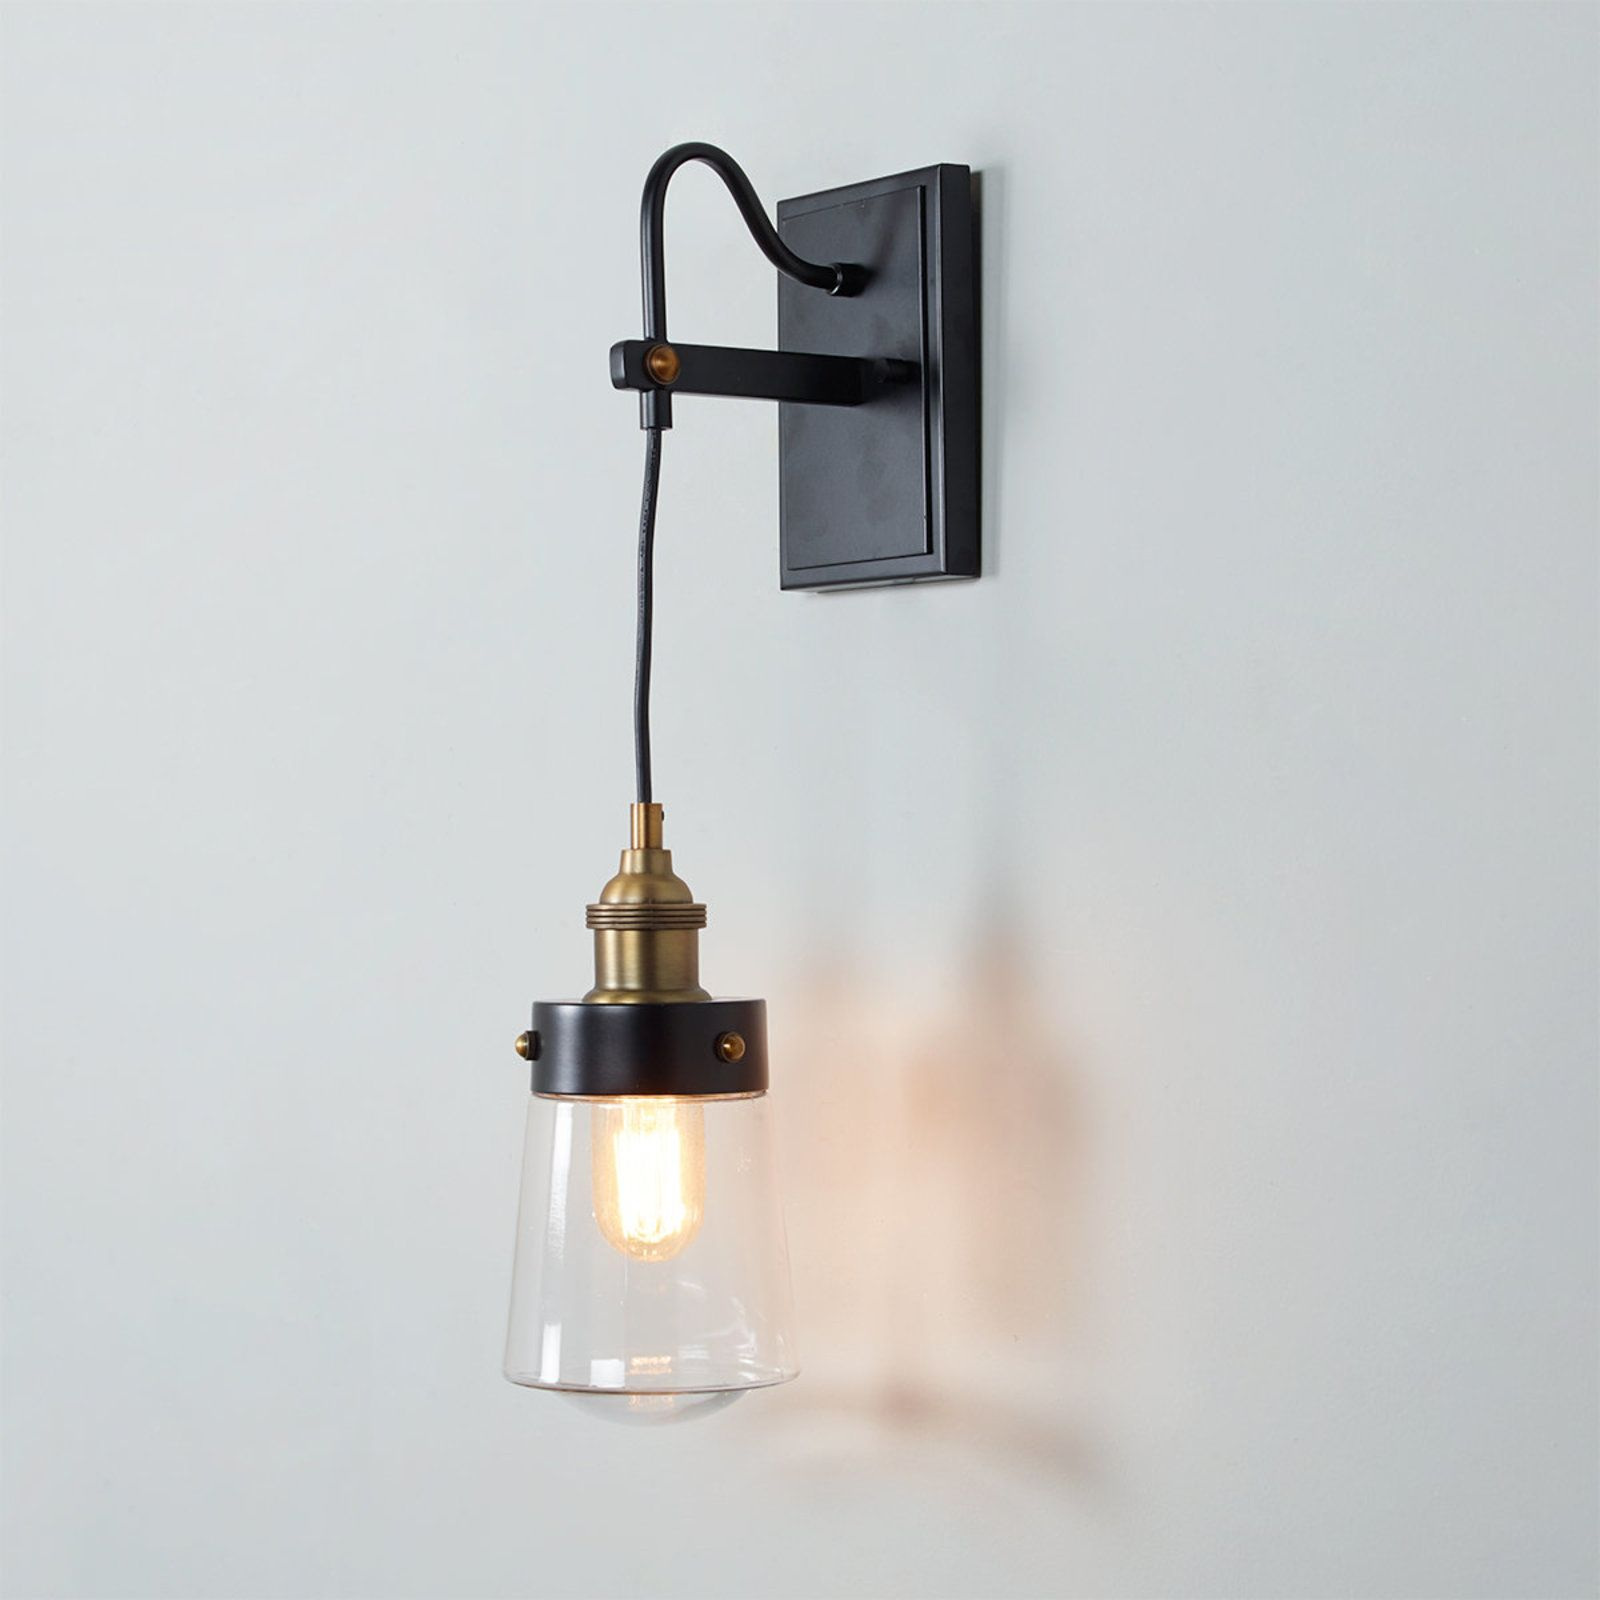 Retro Glass Corded Sconce Corded Sconce Glass Shade Pendant